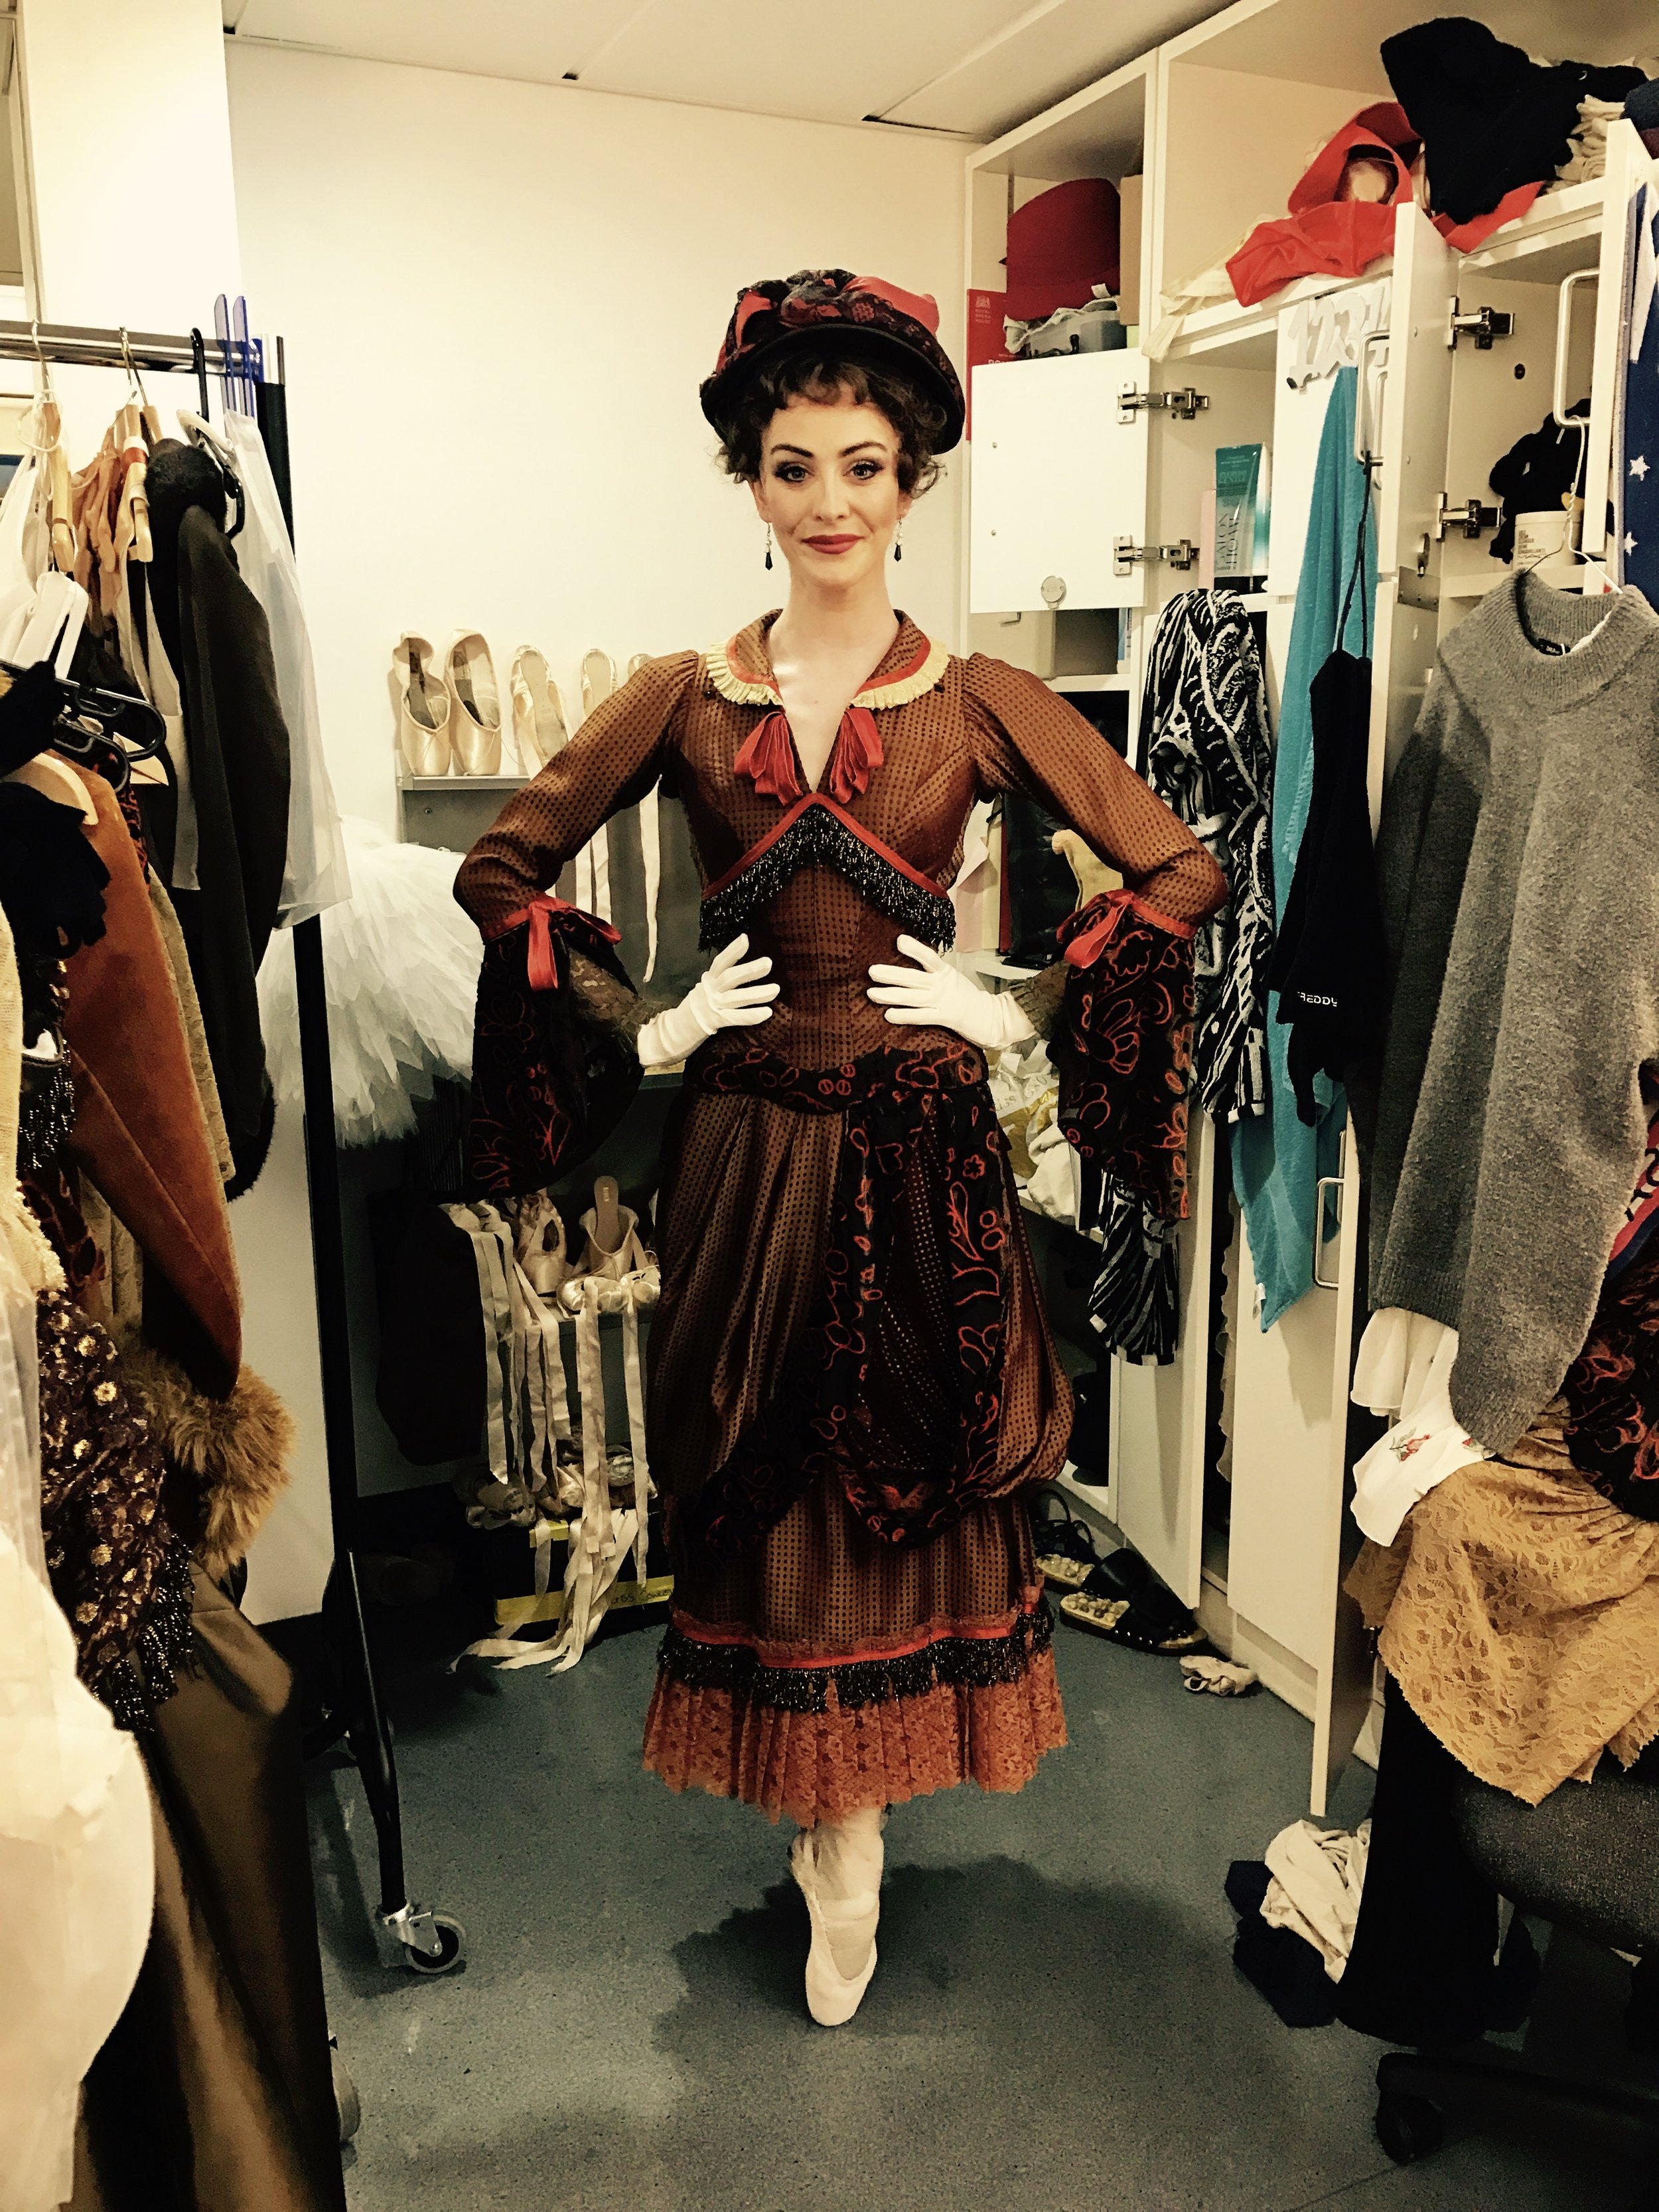 ACT TWO, CARD SCENE. GORGEOUS OPULENT COSTUME. A VERY IMPORTANT SCENE FOR THE STORY. QUITE HEAVY ON THE BUSTLE, SO HAVE TO TAKE EXTRA CARE WHILE MANOUVERING AROUND THE TABLE.